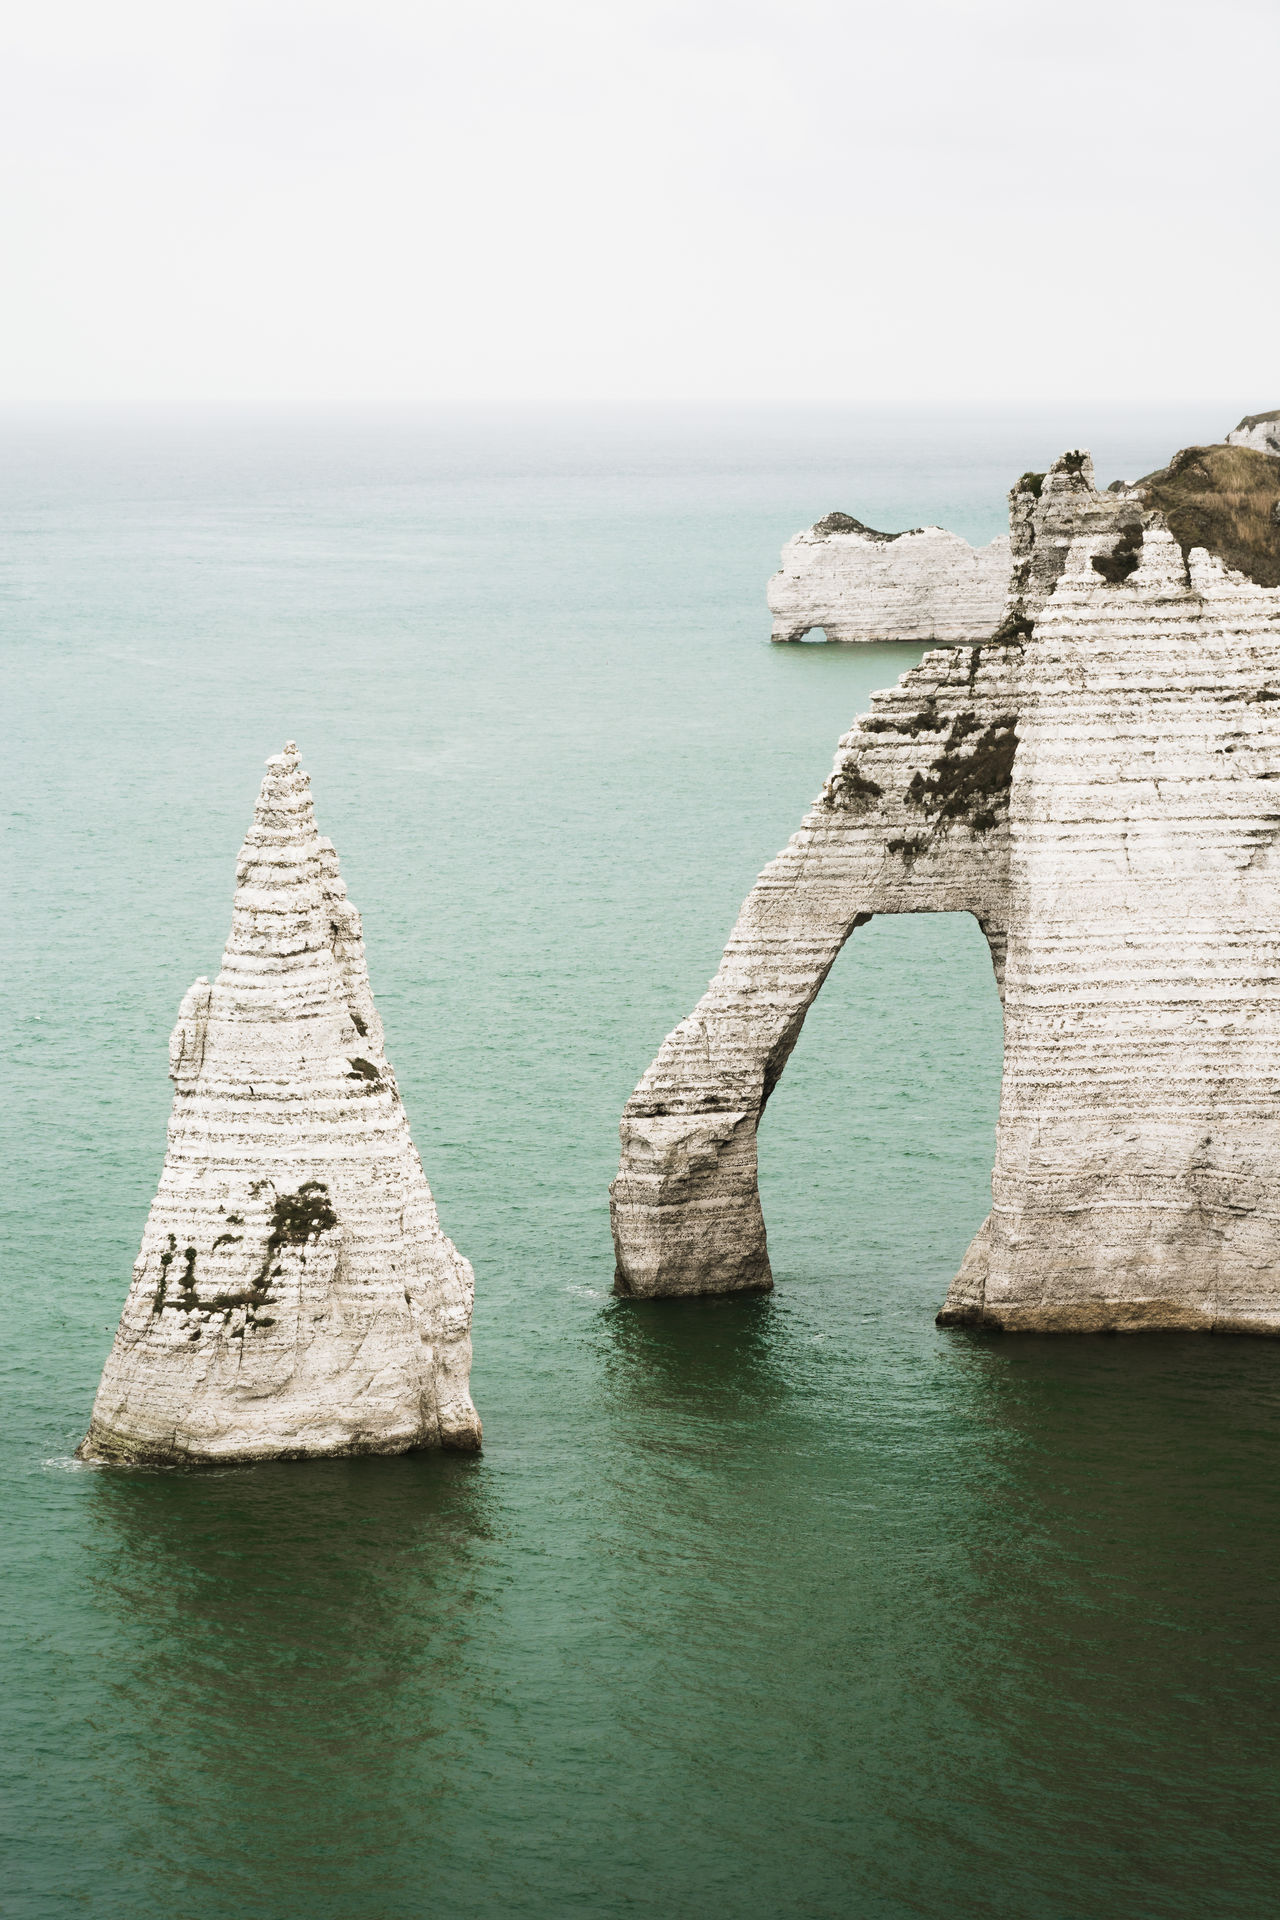 Etretat cliffs, southern view. Kinda old looking, right? Beach Beauty In Nature Cliffs Cliffs And Water Elephant Nature Sculpture Horizon Over Water Landscape Mother Natures Artwork Nature Crafts Normandie France Old School Looking Rock - Object Rocky Coastline Scenics Sea Sky Tranquility Vintage Photo Water